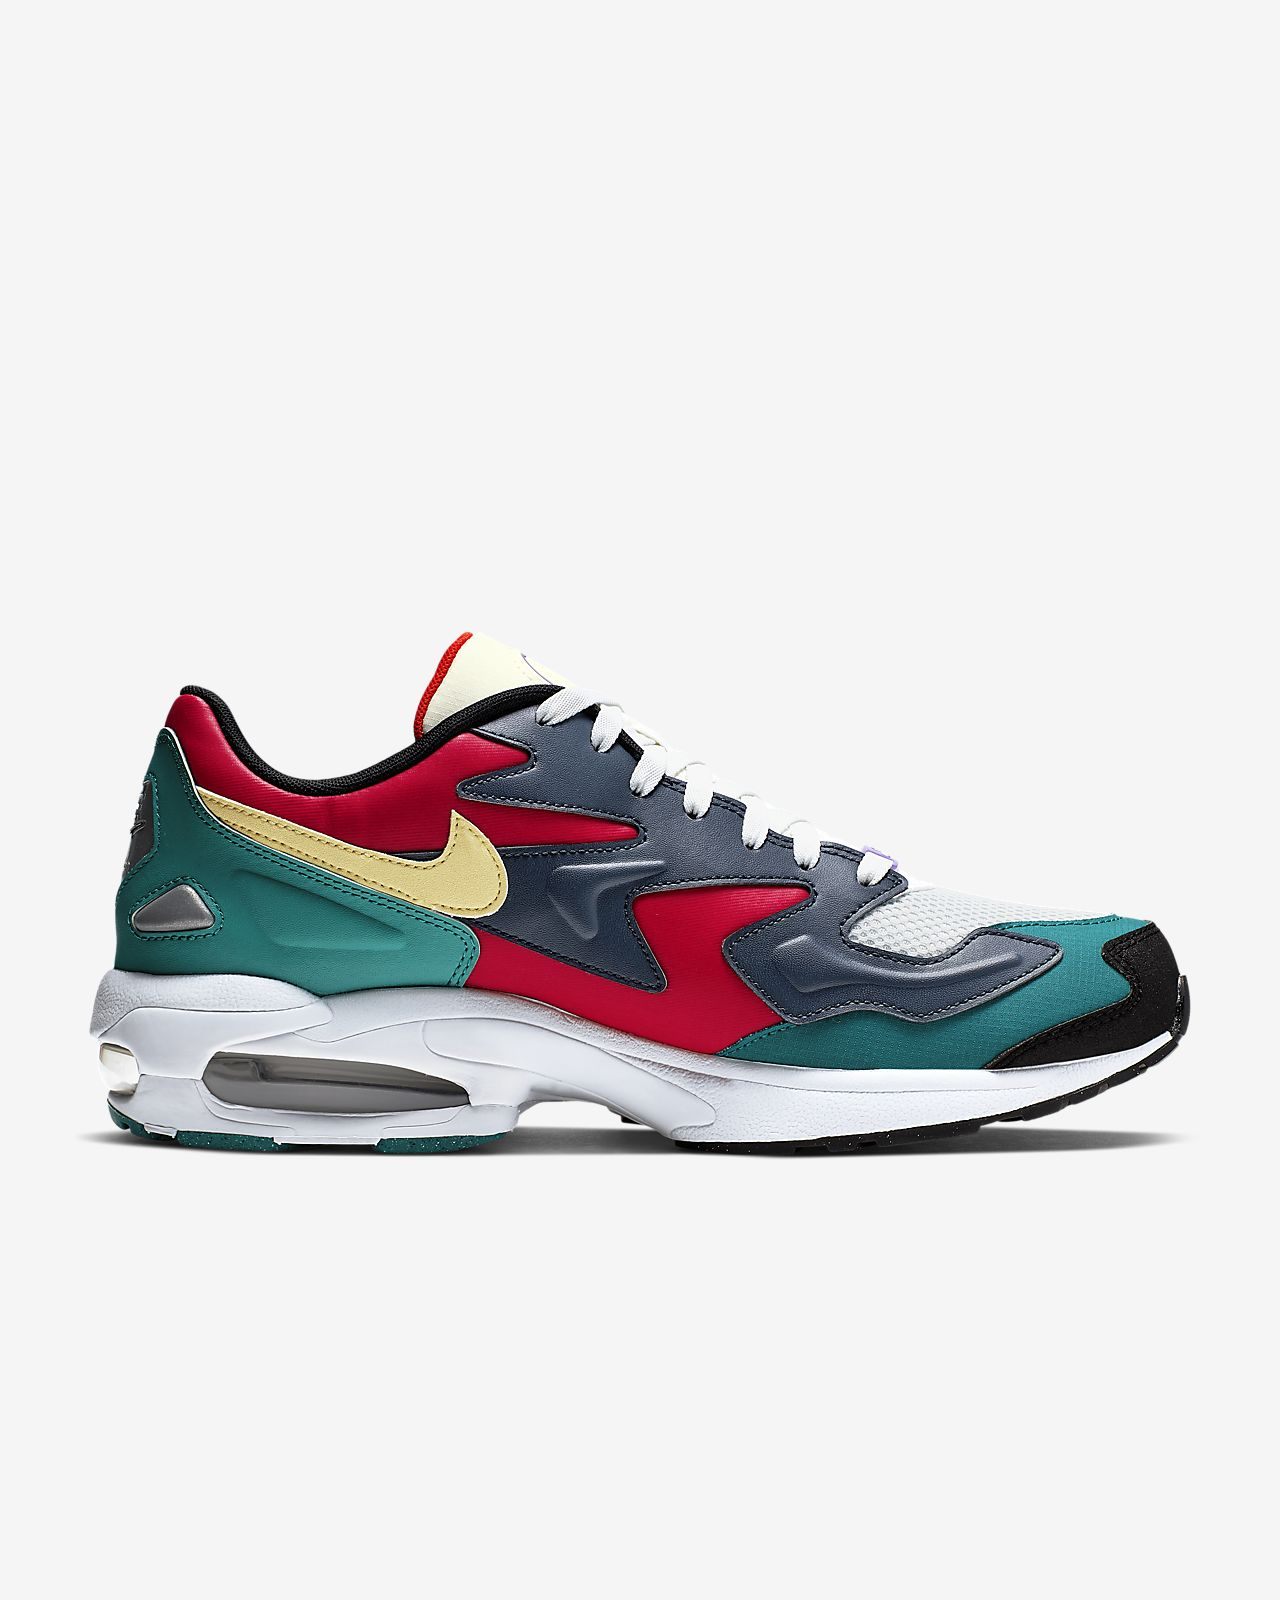 Replica Nike Air Max 720 Red On Sale